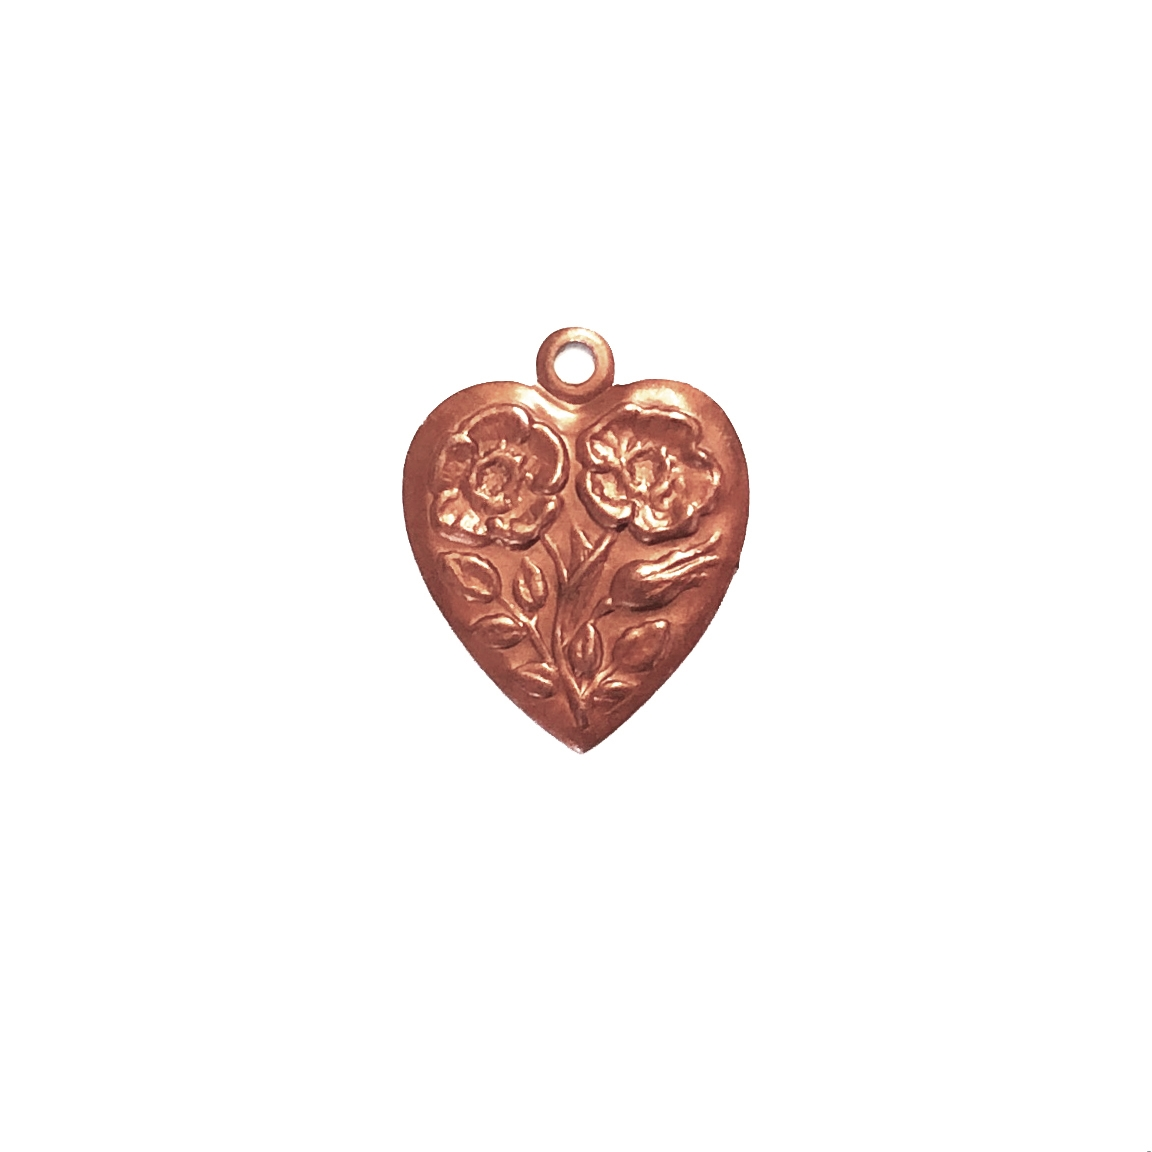 brass charms, heart charms, gingerbread, 0181, floral heart charms, antique copper, vintage jewelry supplies, brass jewelry parts, jewelry findings, US made, nickel free, bsueboutiques